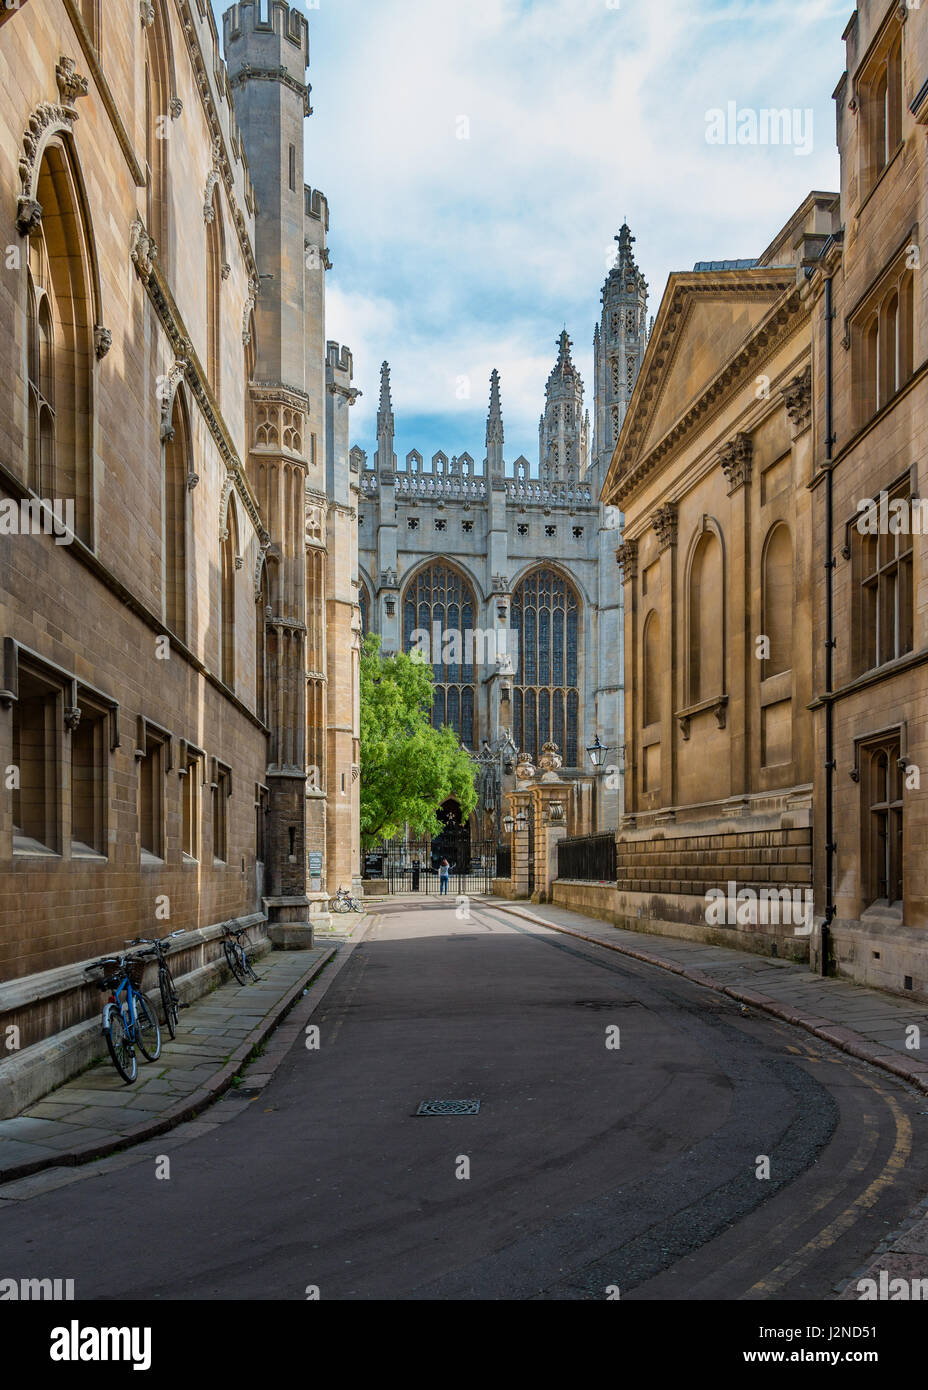 Looking at King's College Chapel from Trinity Lane in Cambridge - Stock Image